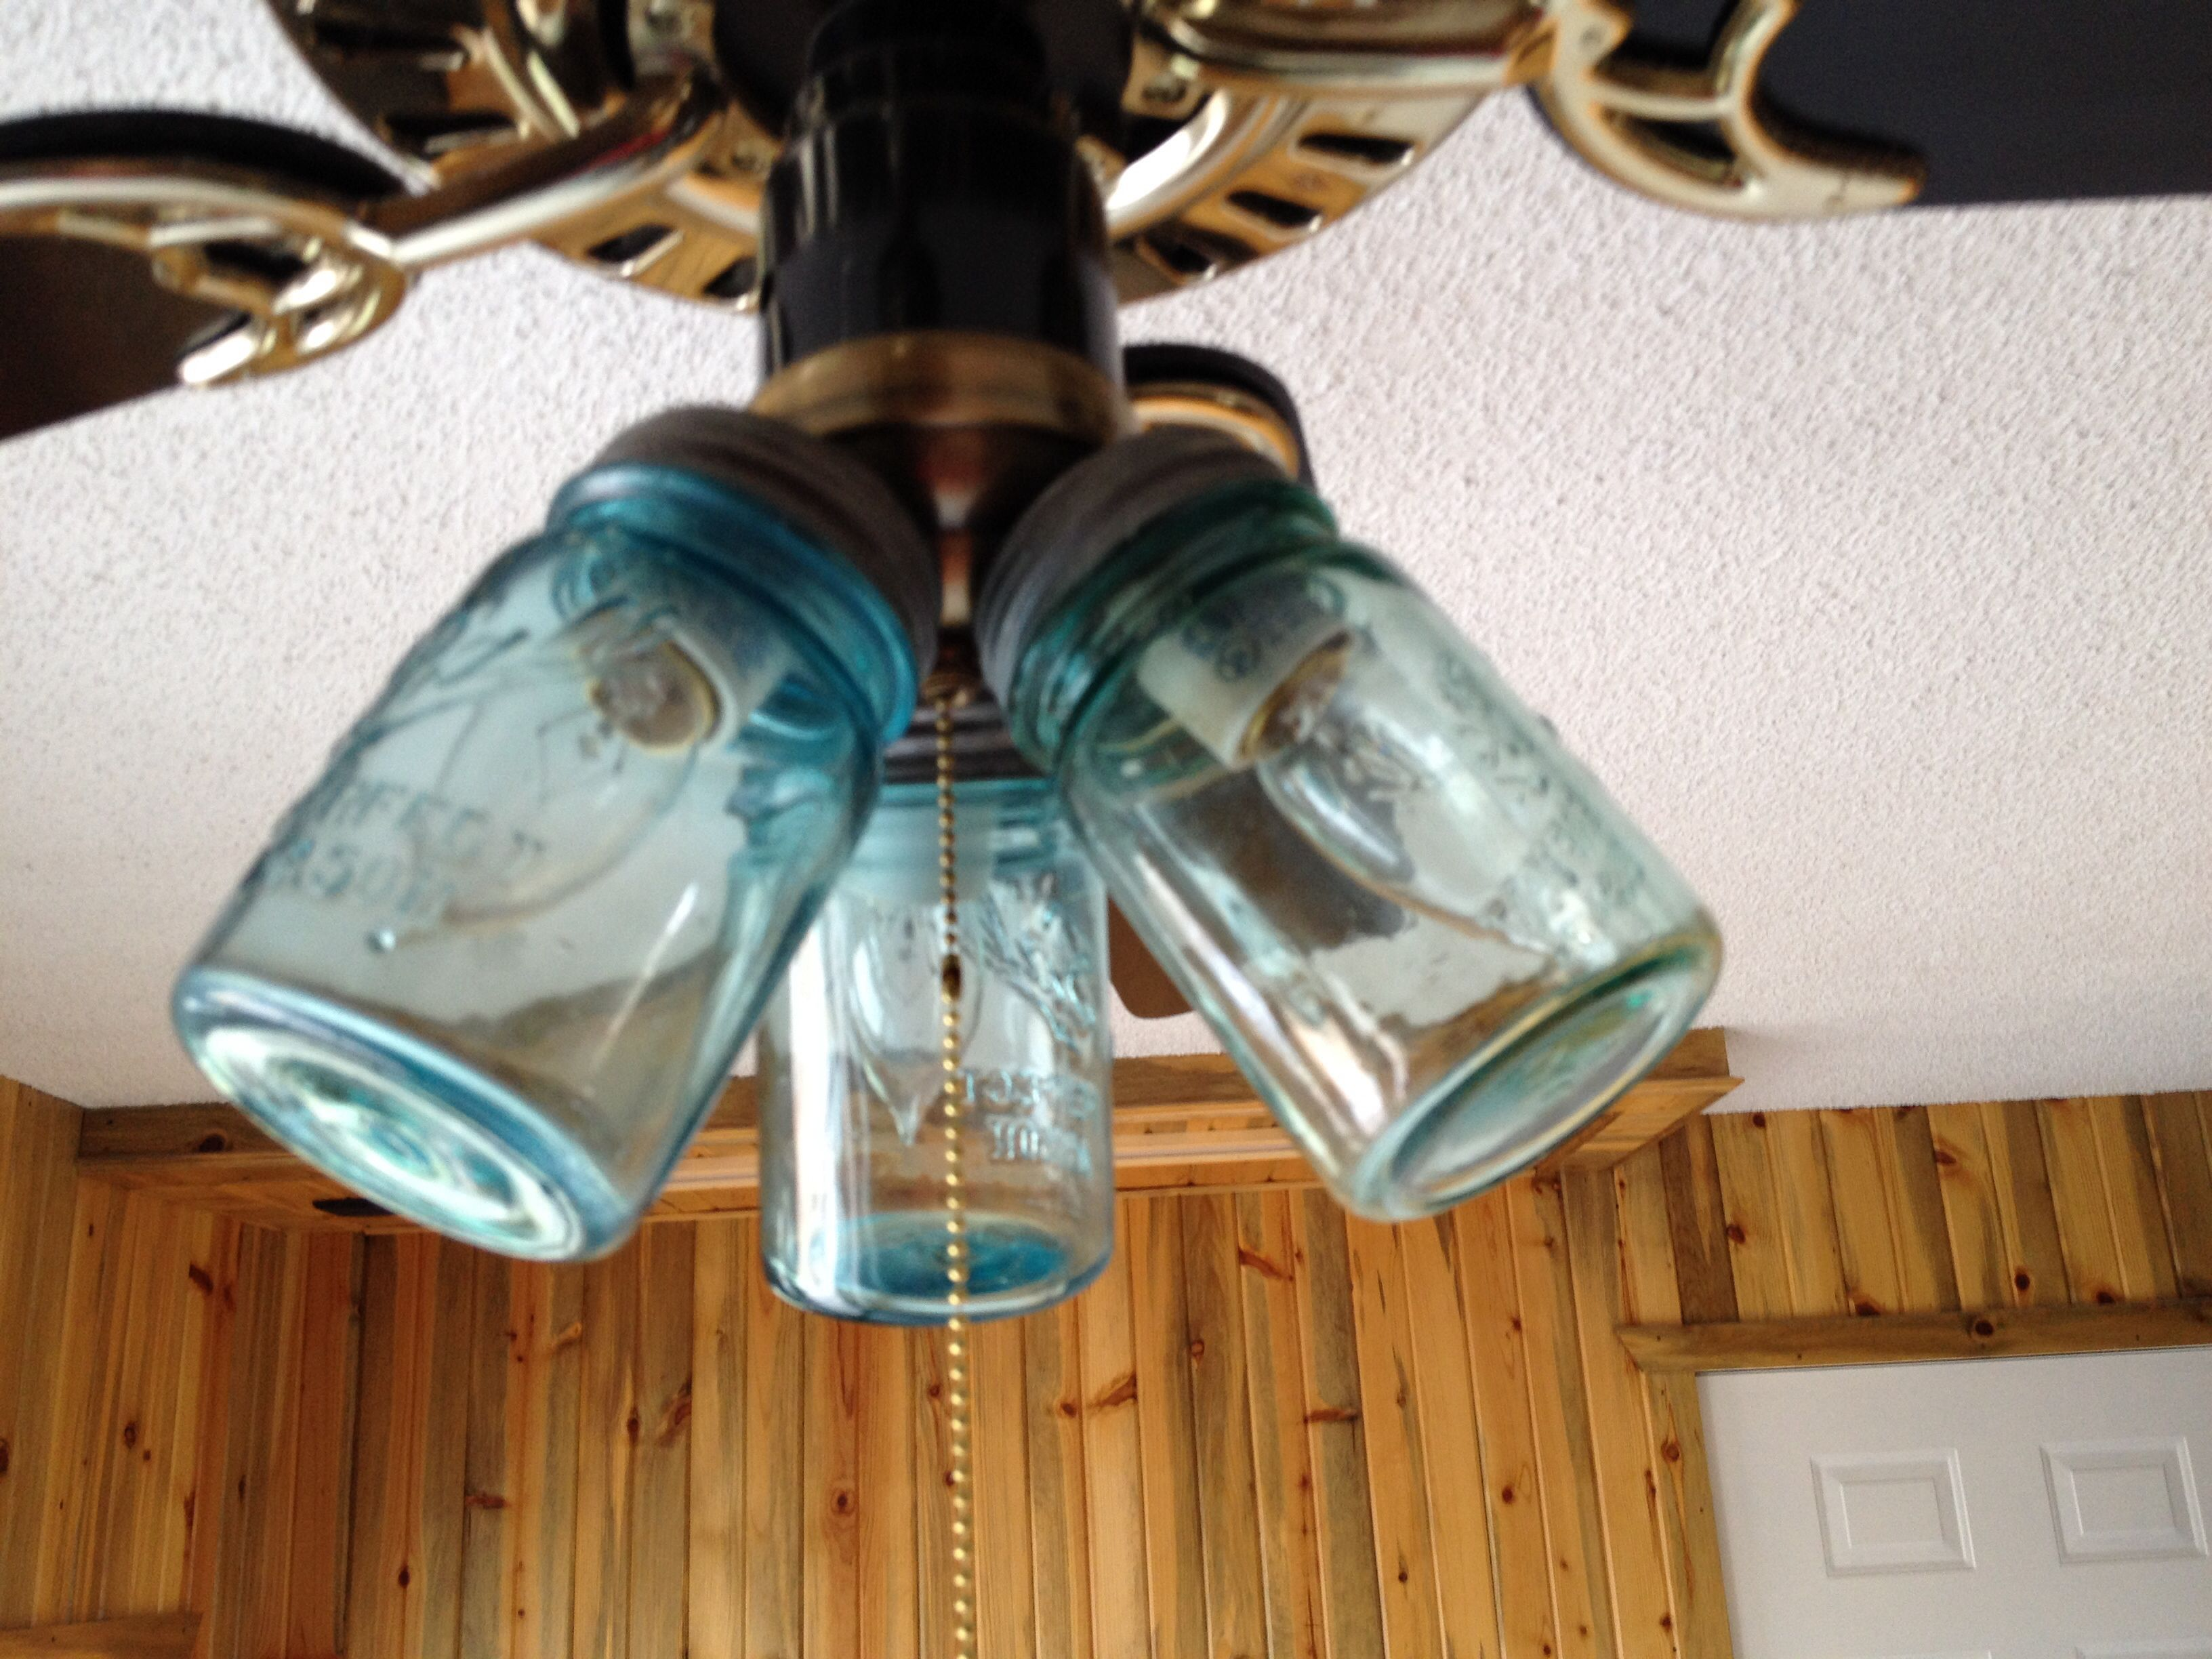 Mason jar ceiling fan light covers Home Sweet Home Pinterest